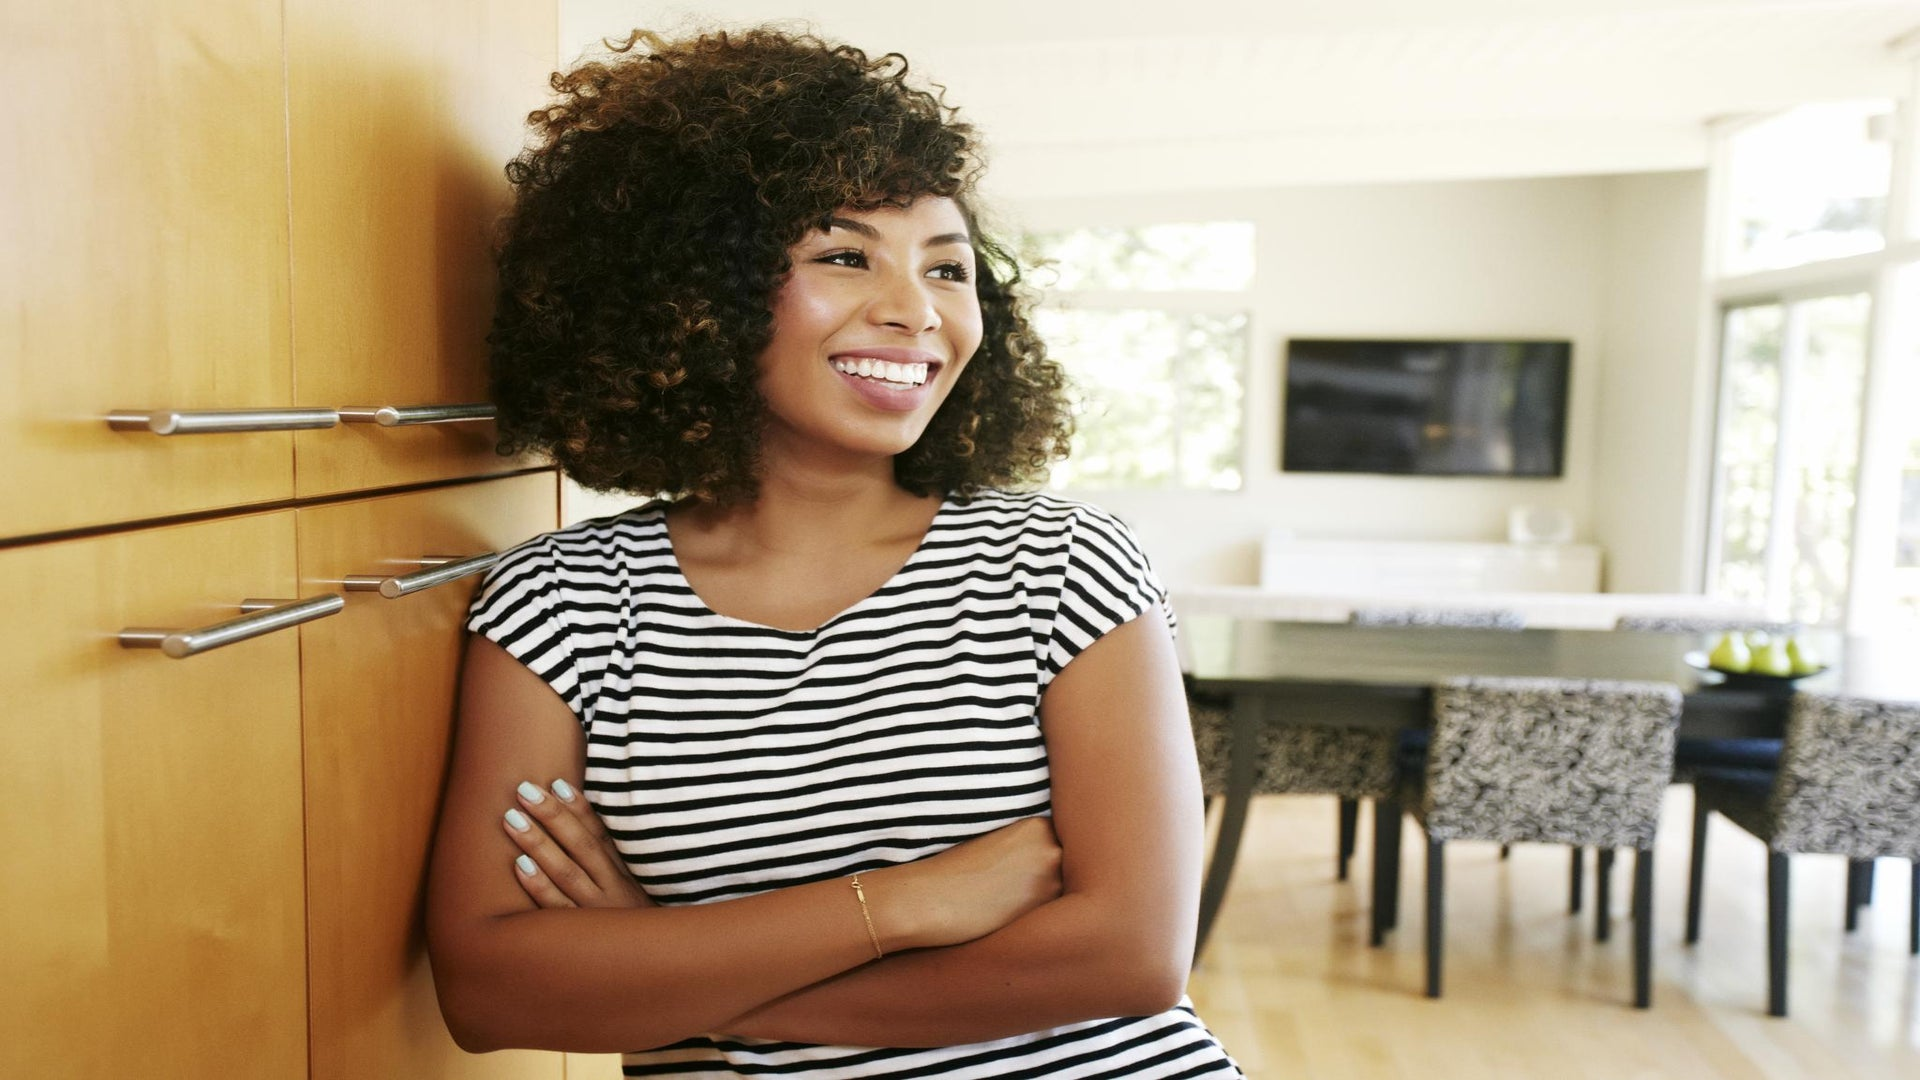 ESSENCE Poll: Based on Your Household Income, Are You Living Comfortably?